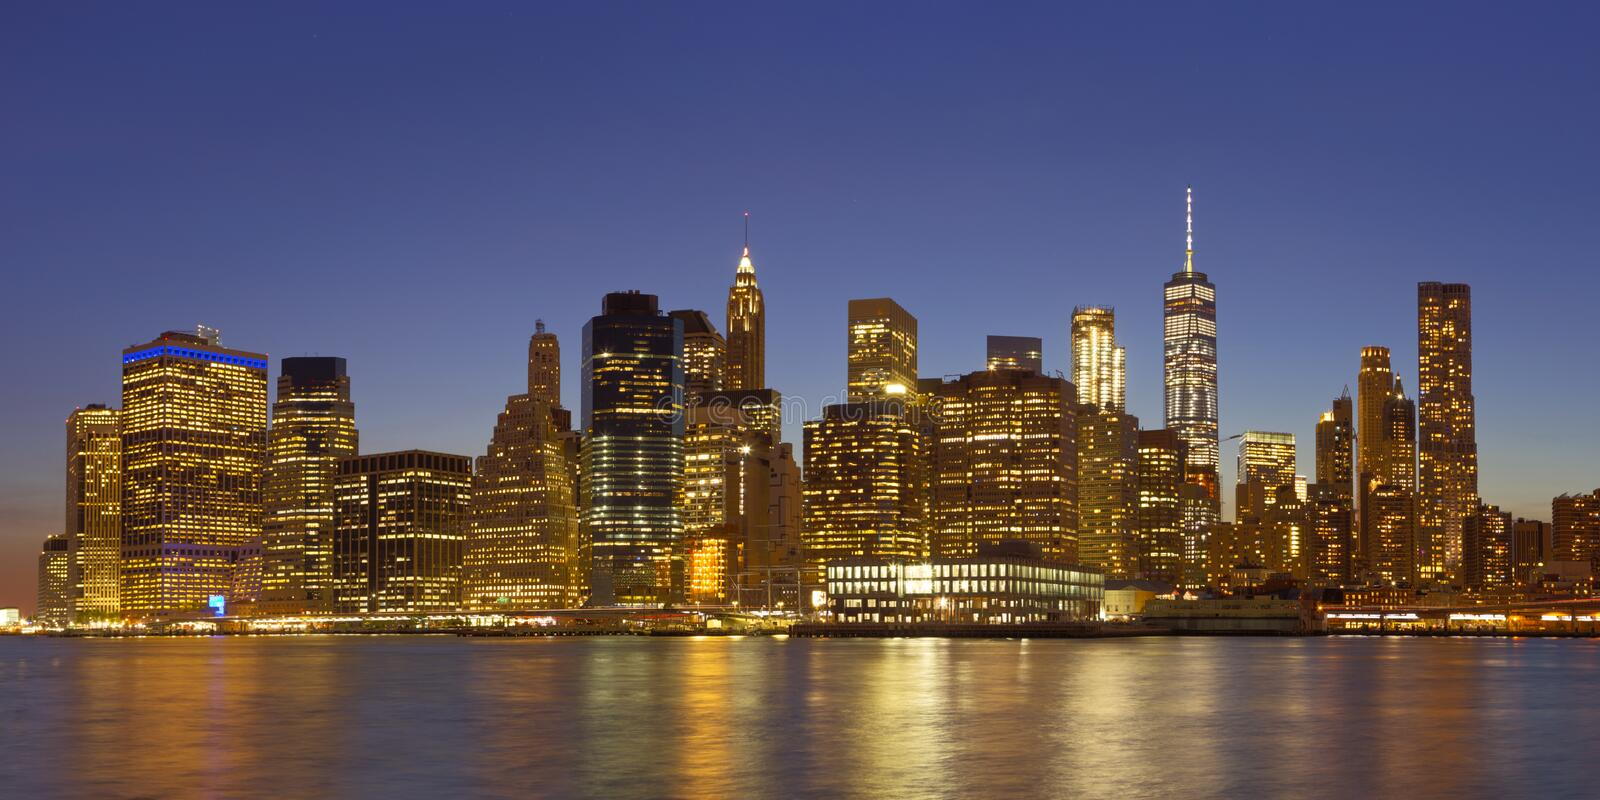 The New York City skyline at night stock images